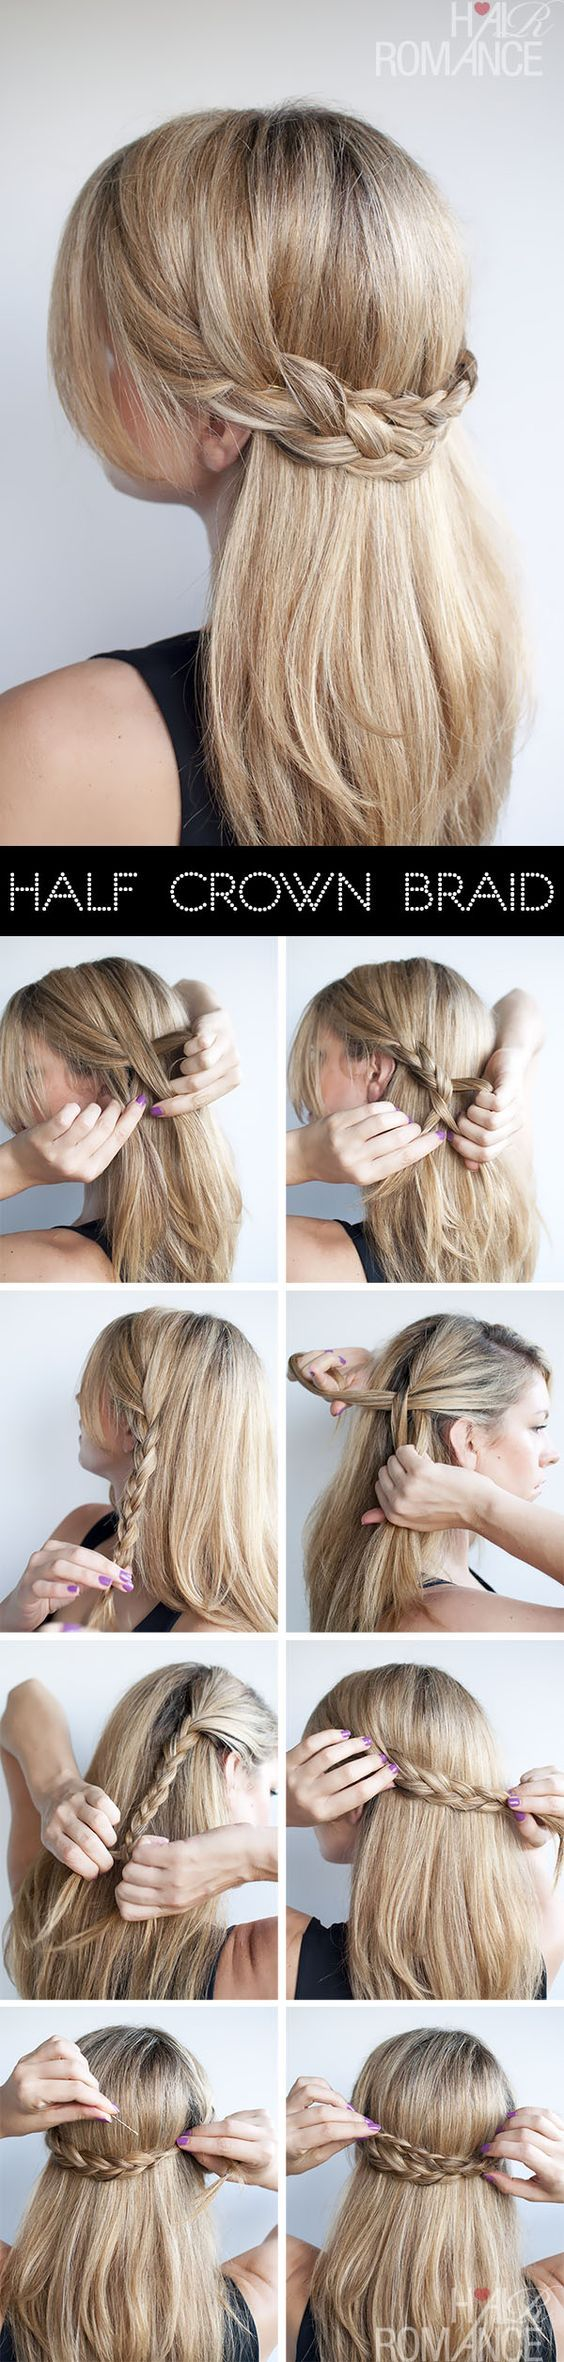 GAME OF THRONES INSPIRED HAIRSTYLES - Page 4 of 4 - Trend To Wear